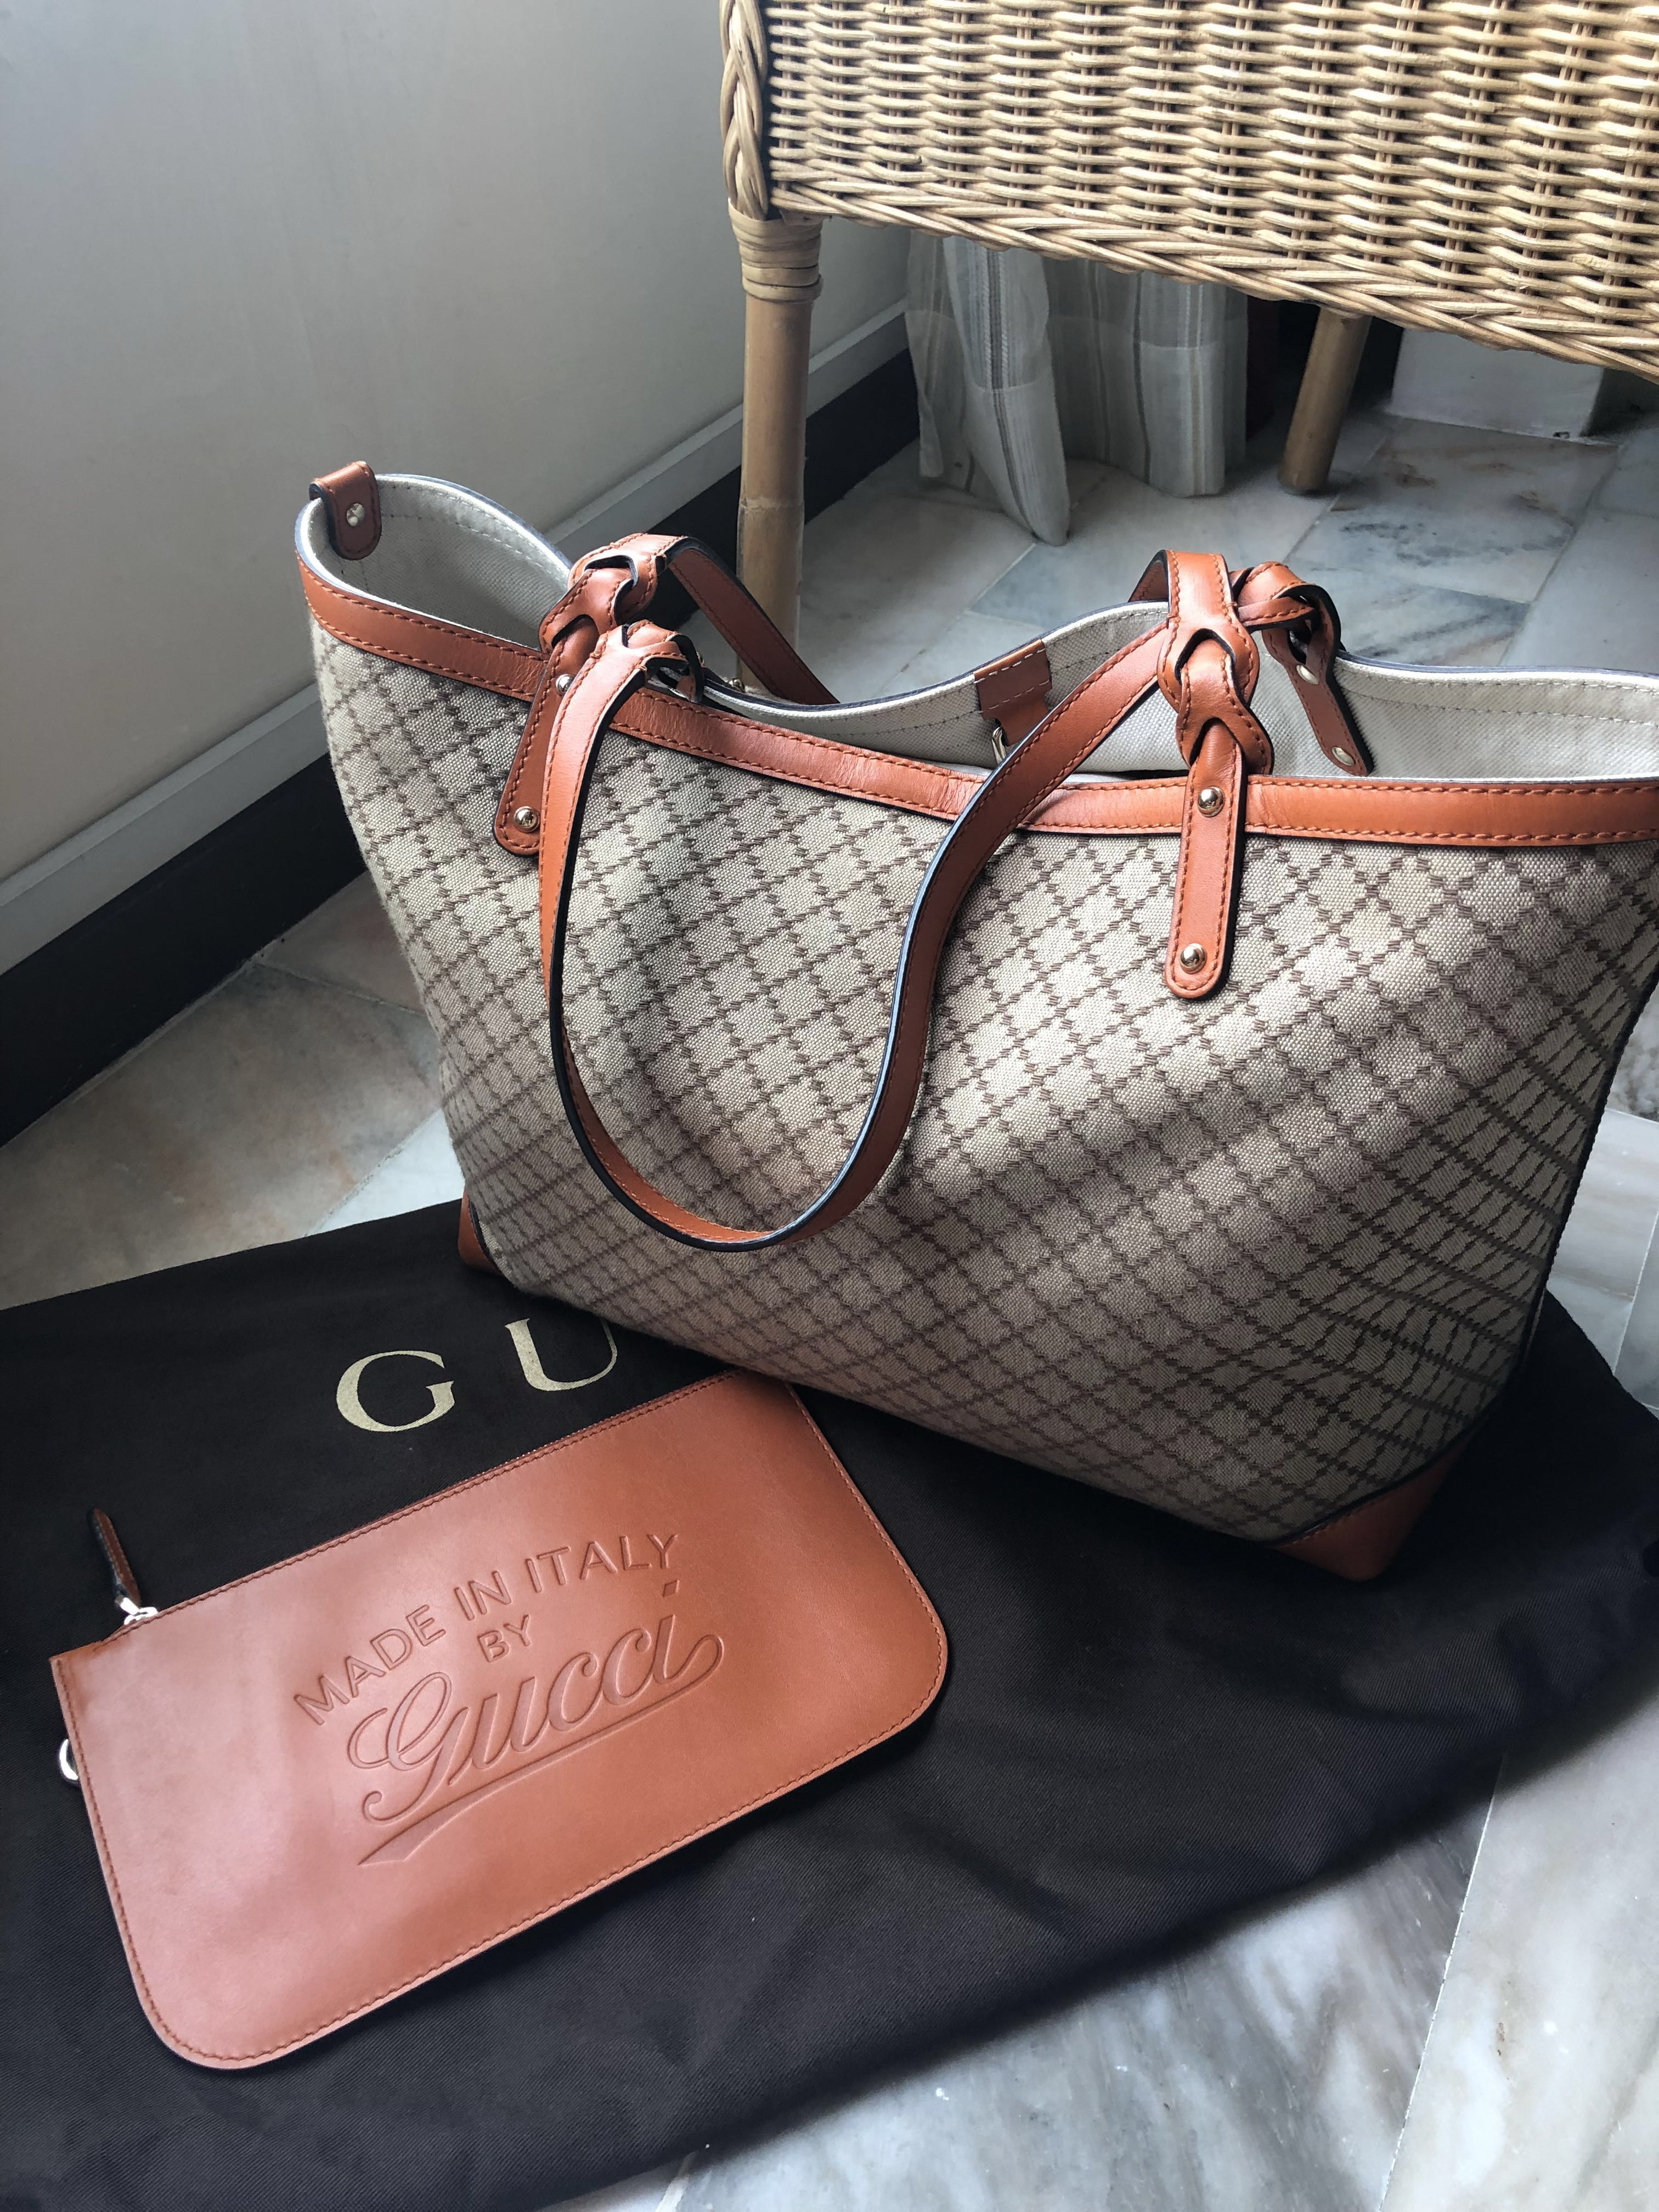 809a4eaef87203 Gucci Neverfull Canvas, Women's Fashion, Bags & Wallets on Carousell